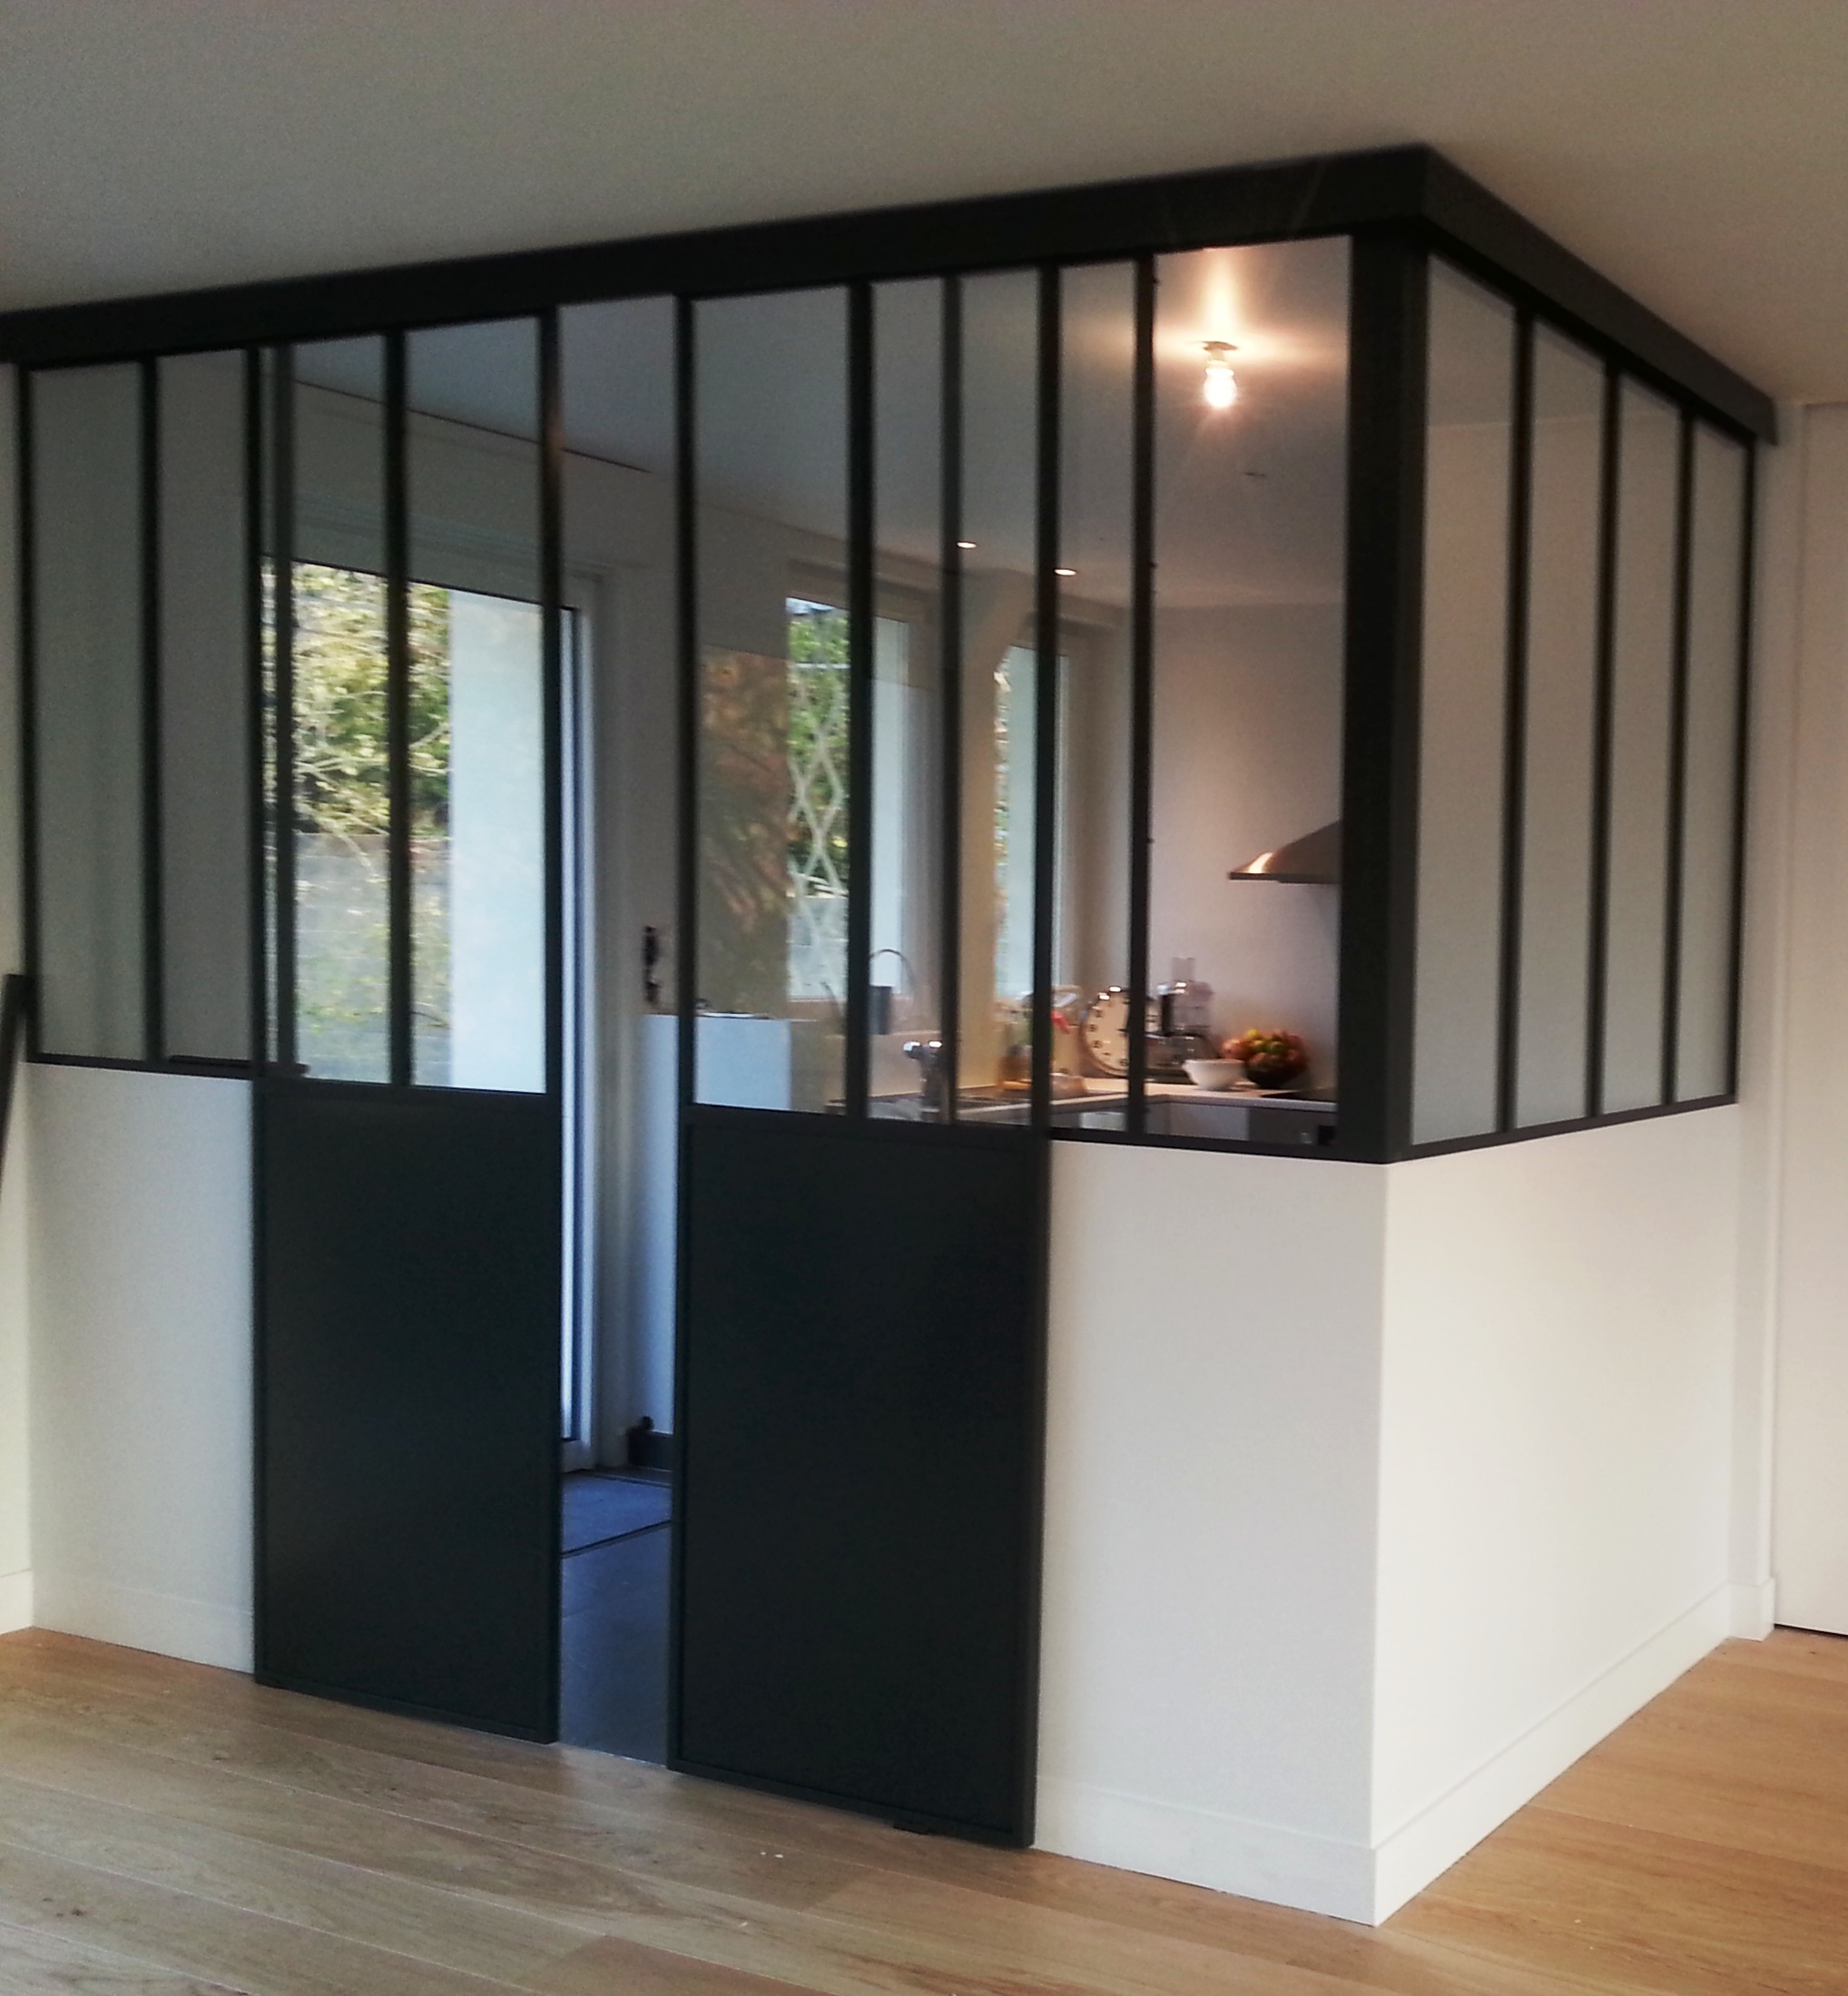 Installation thermique dimension porte coulissante for Dimension standard porte interieur